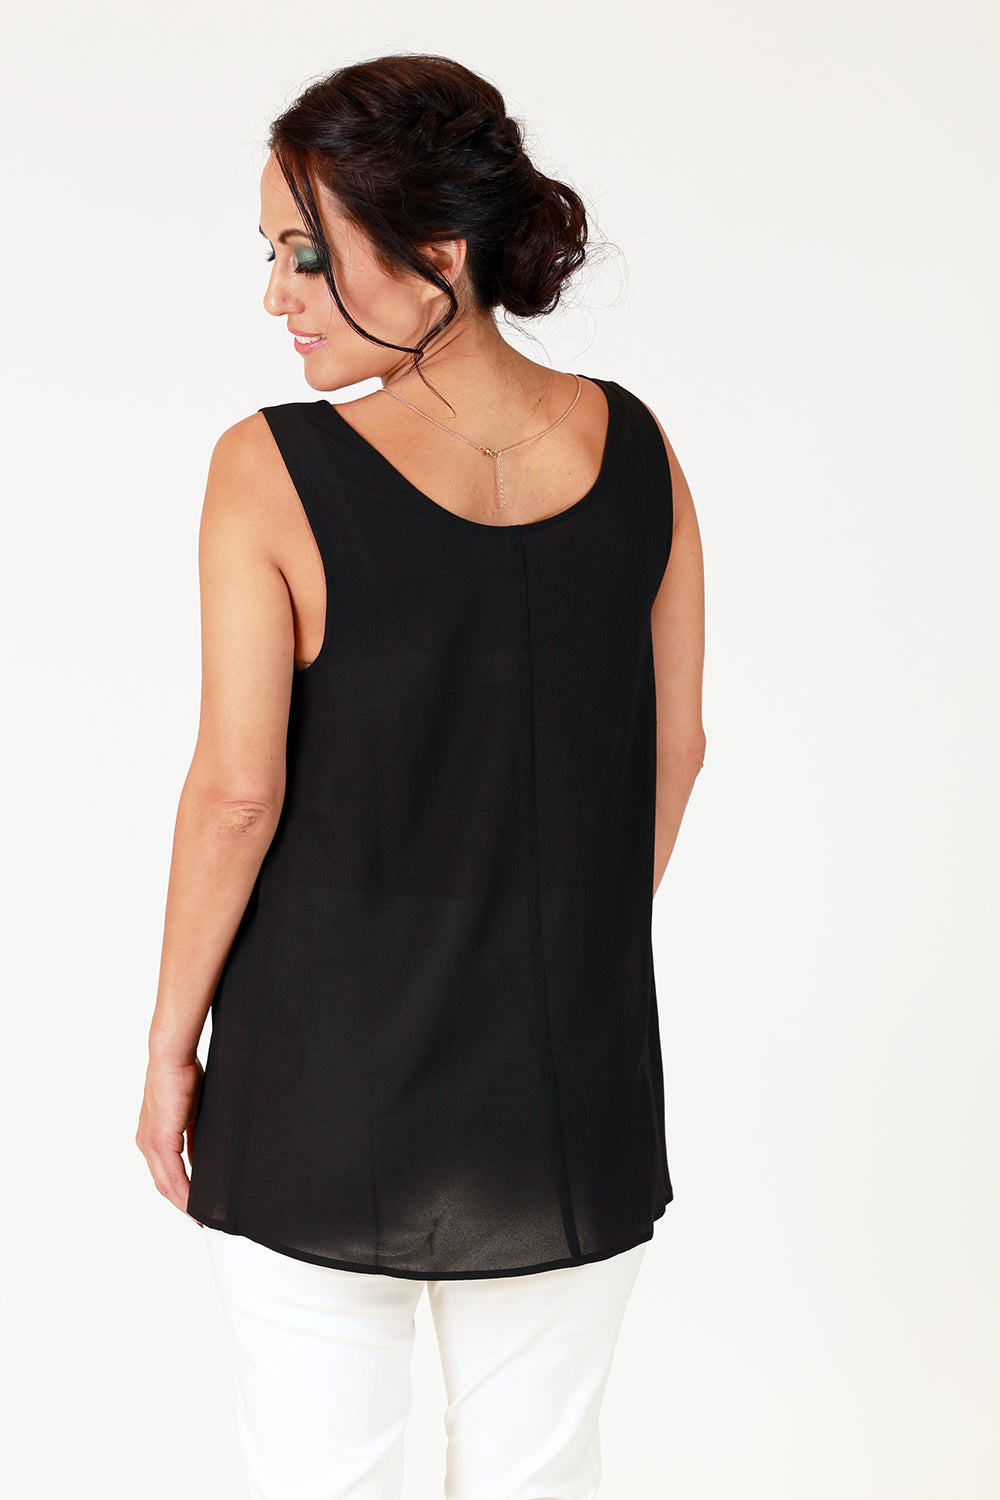 Spring Liz Top - Black